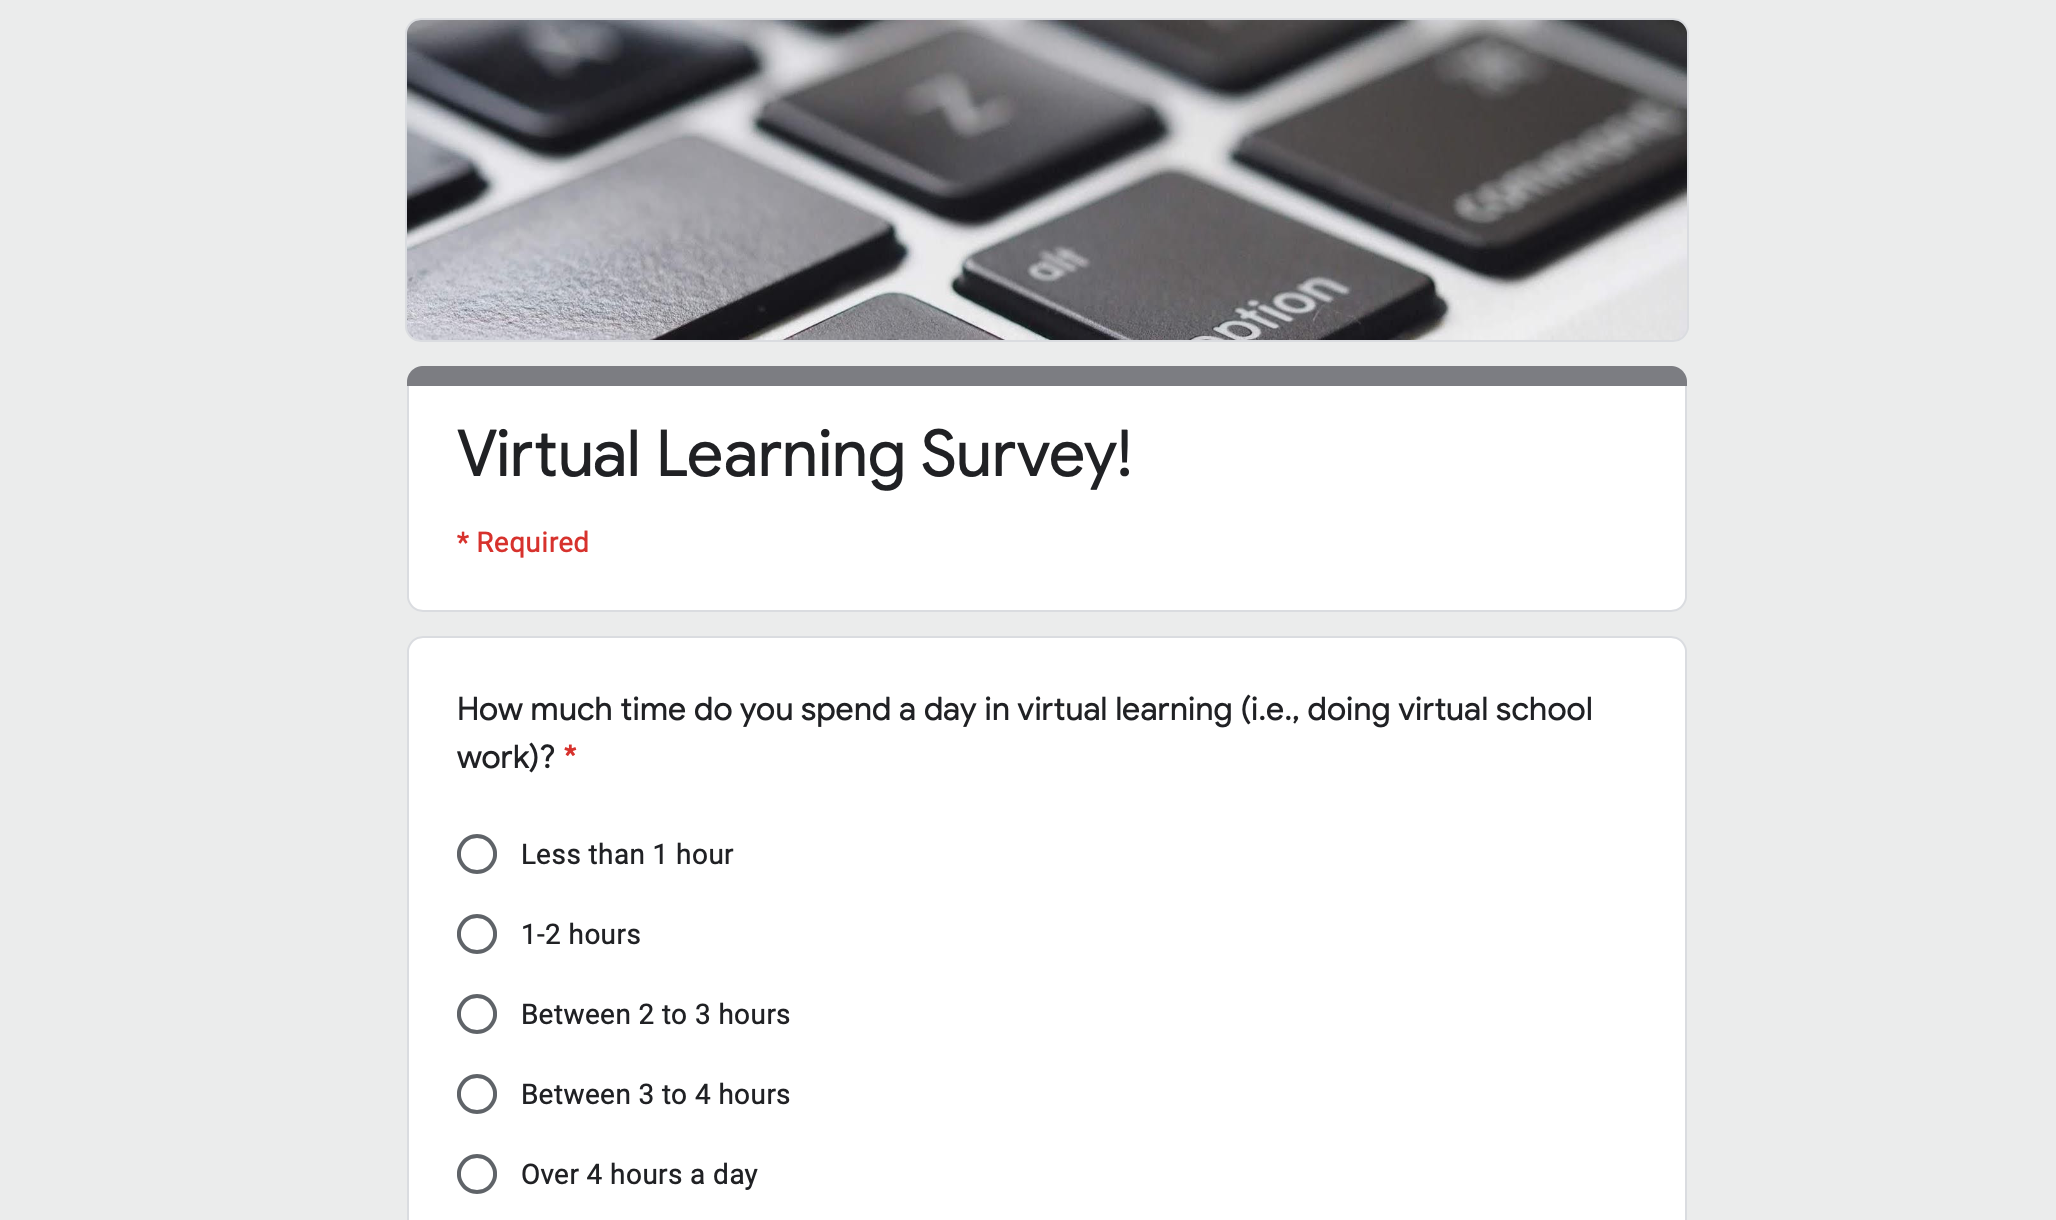 Showing a survey